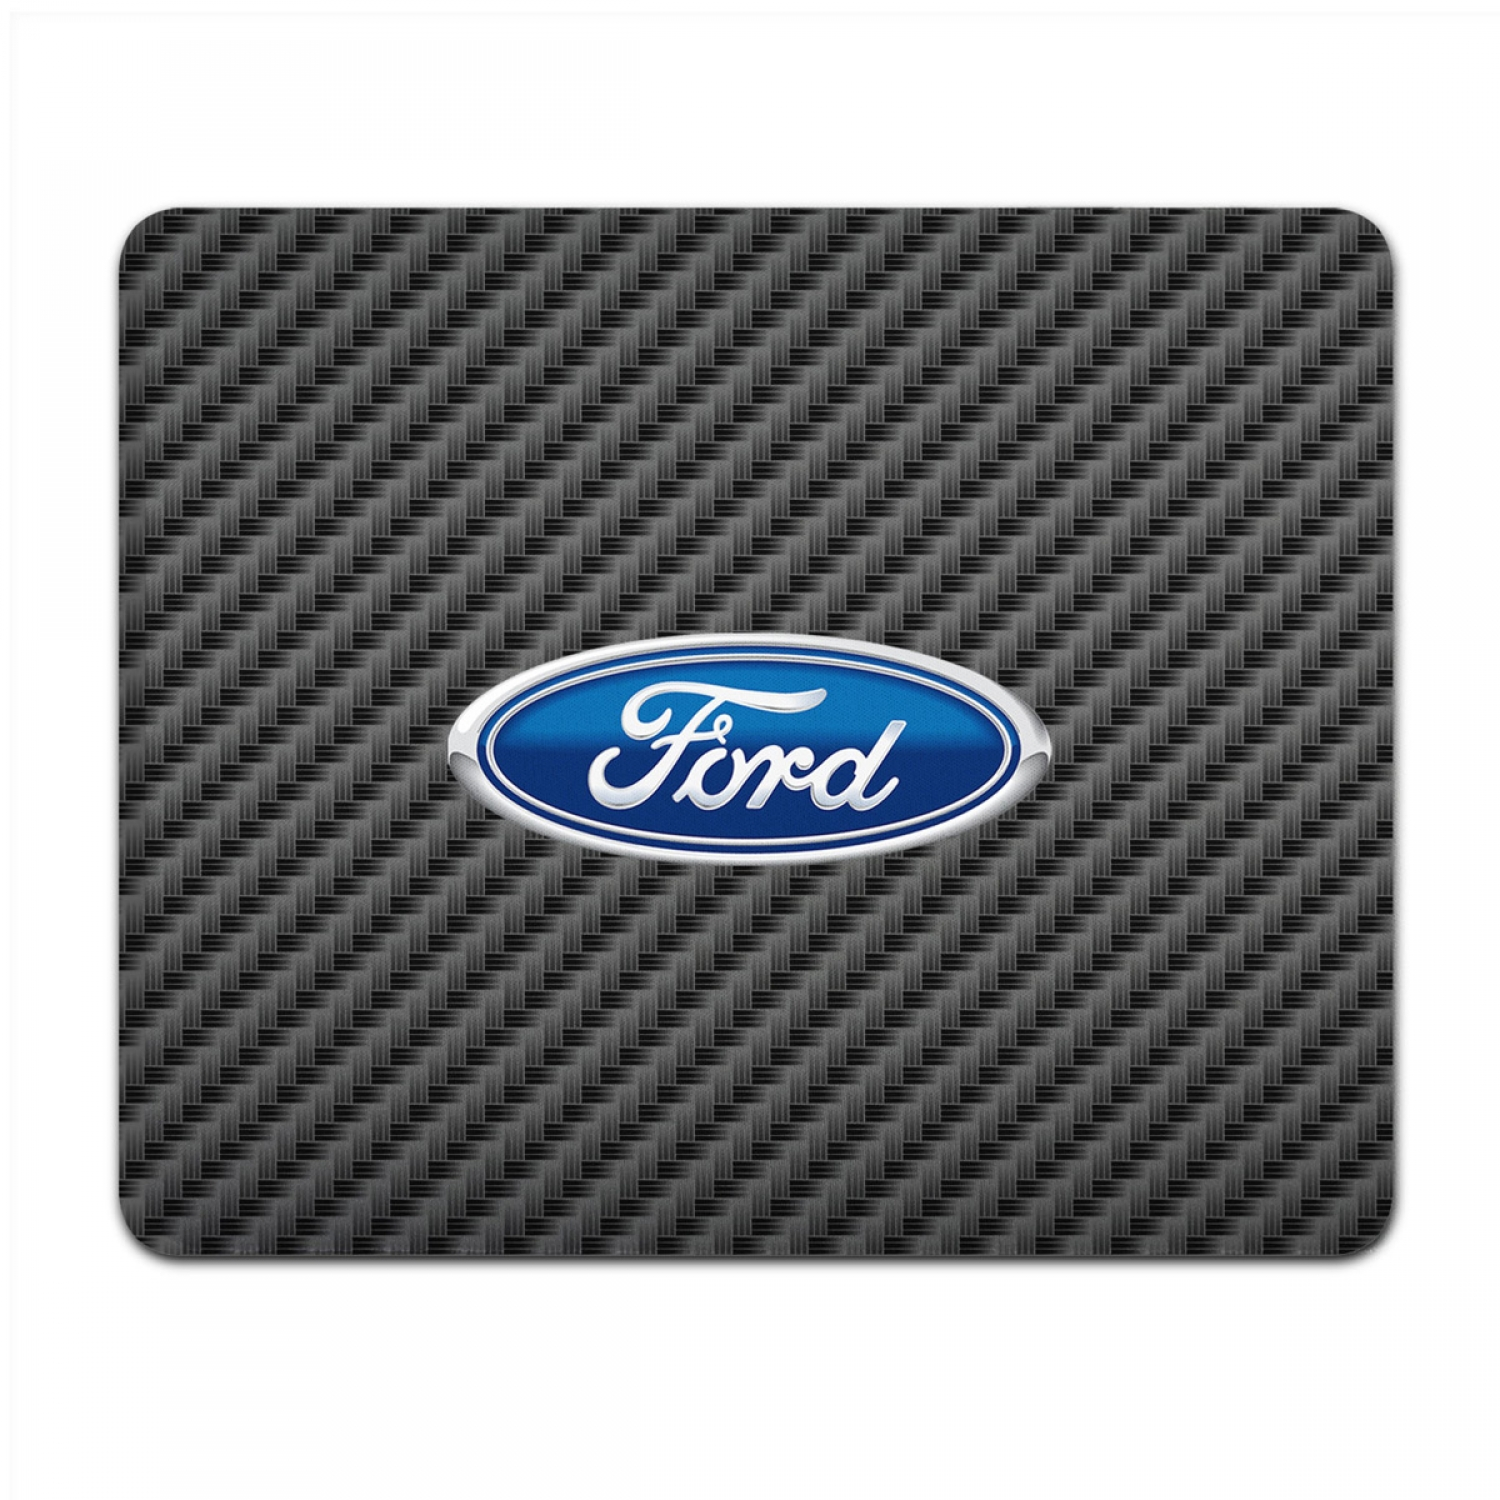 Ford Logo Black Carbon Fiber Texture Graphic PC Mouse Pad